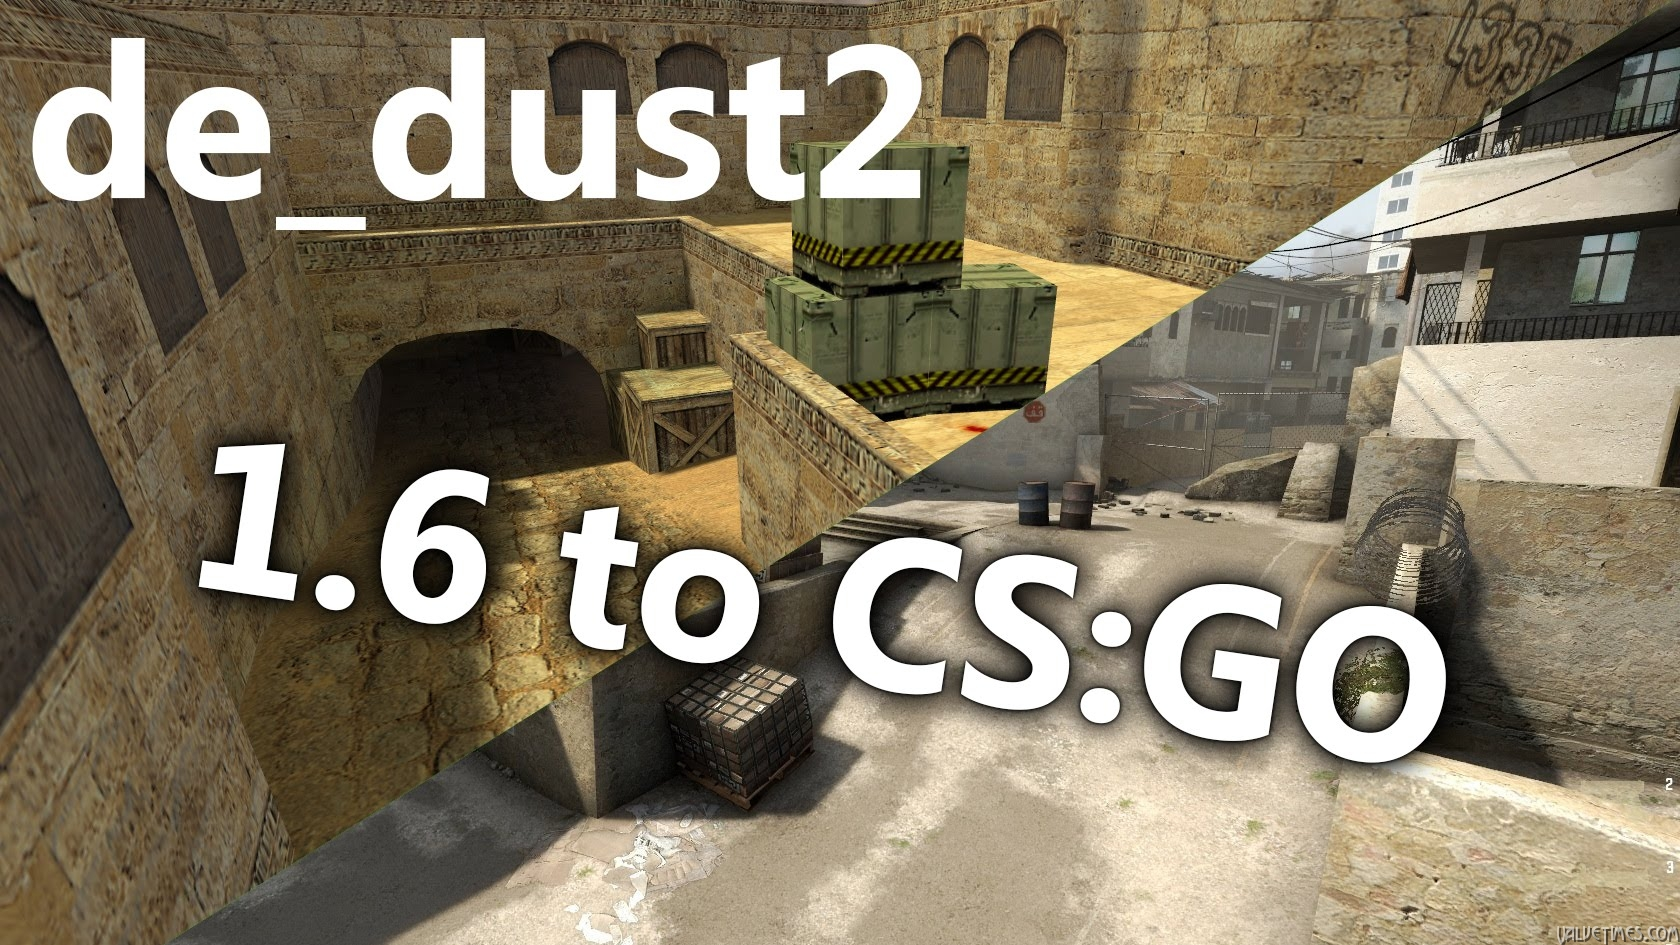 История изменений карты de_dust2 — от CS 1.6 до CS:GO